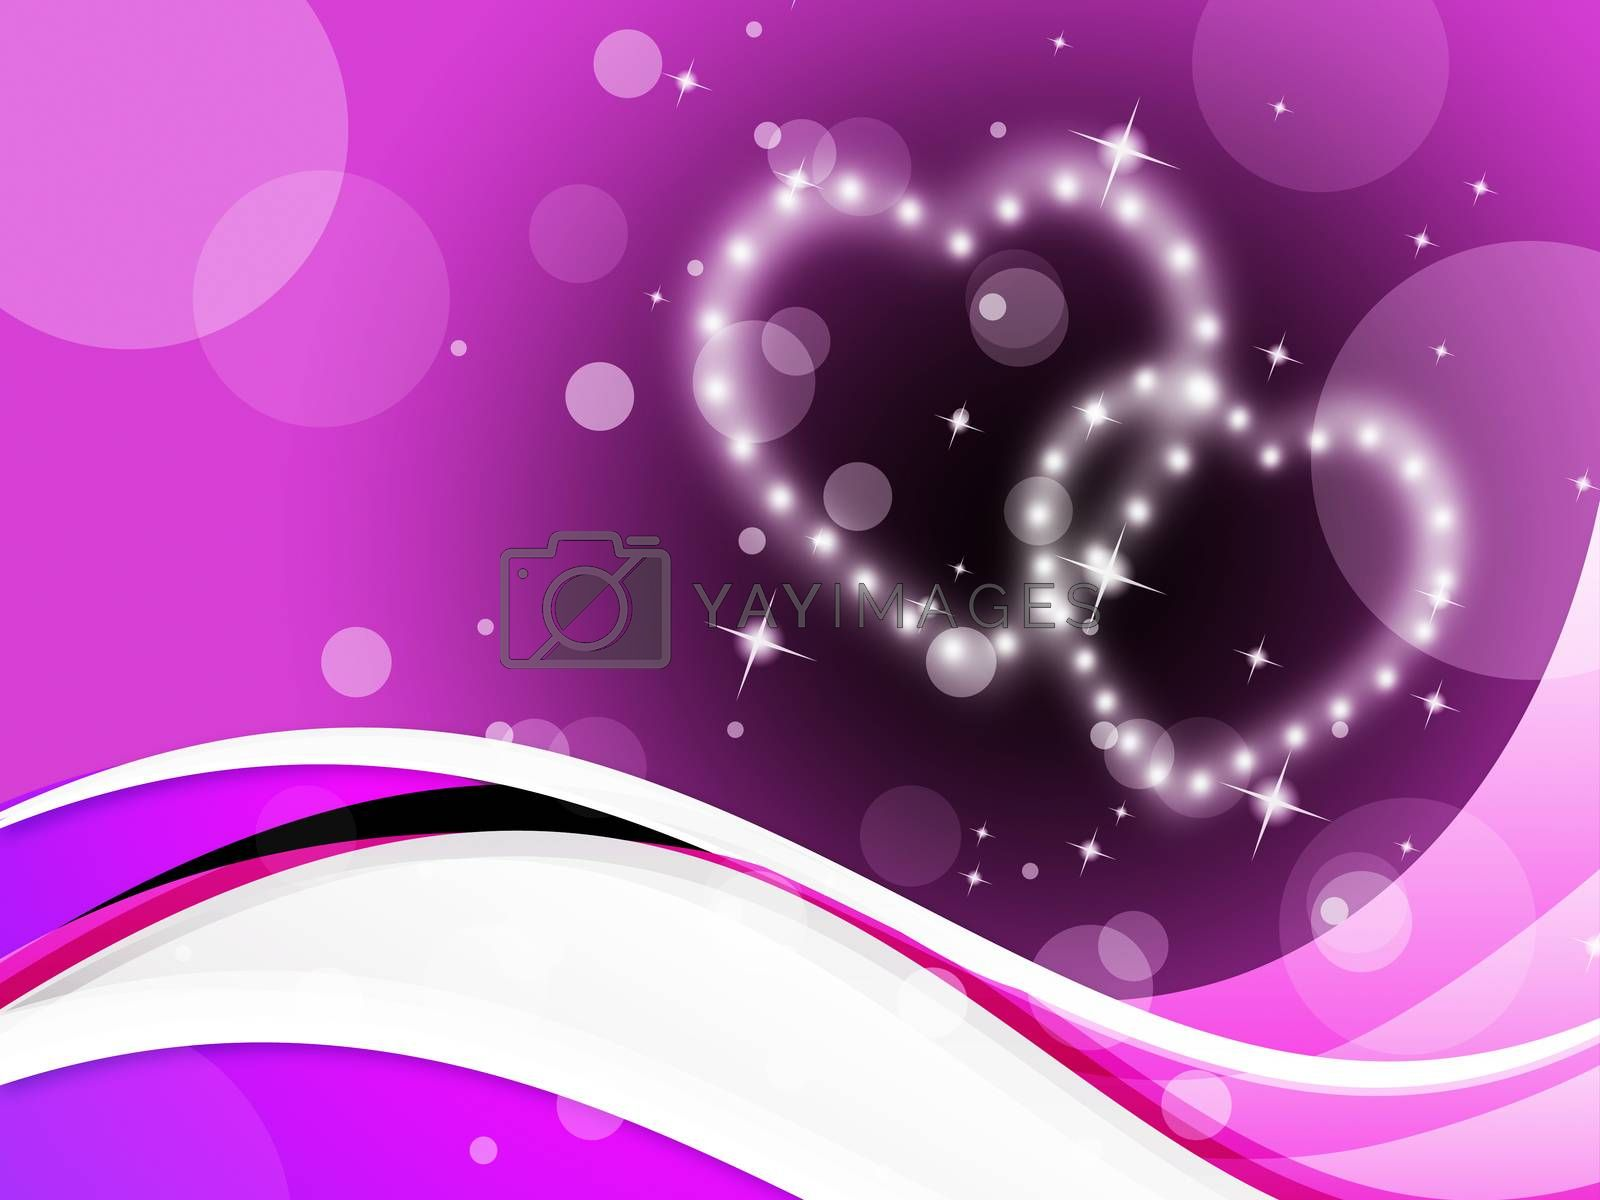 Purple Hearts Background Meaning Romance Affections And Twinkling